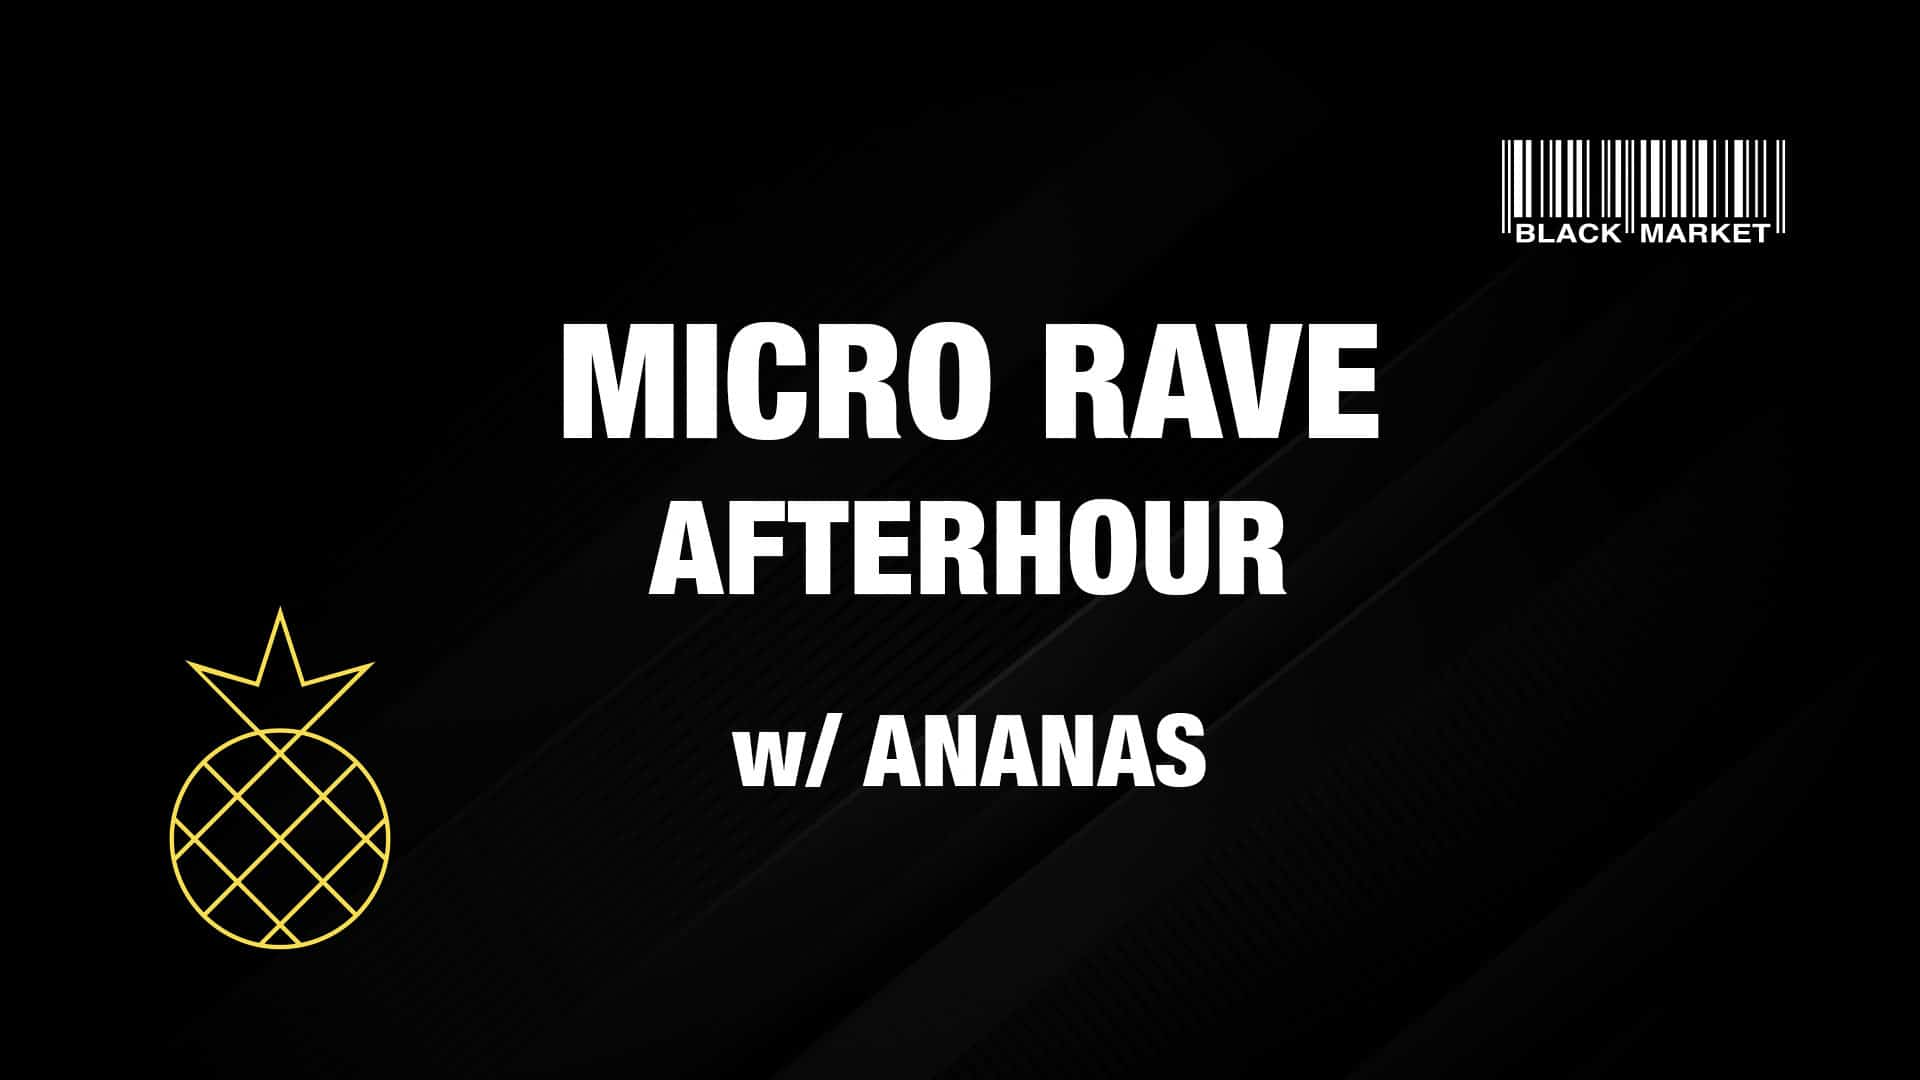 Events Wien: MICRO RAVE AFTERHOUR #1 w/ ANANAS